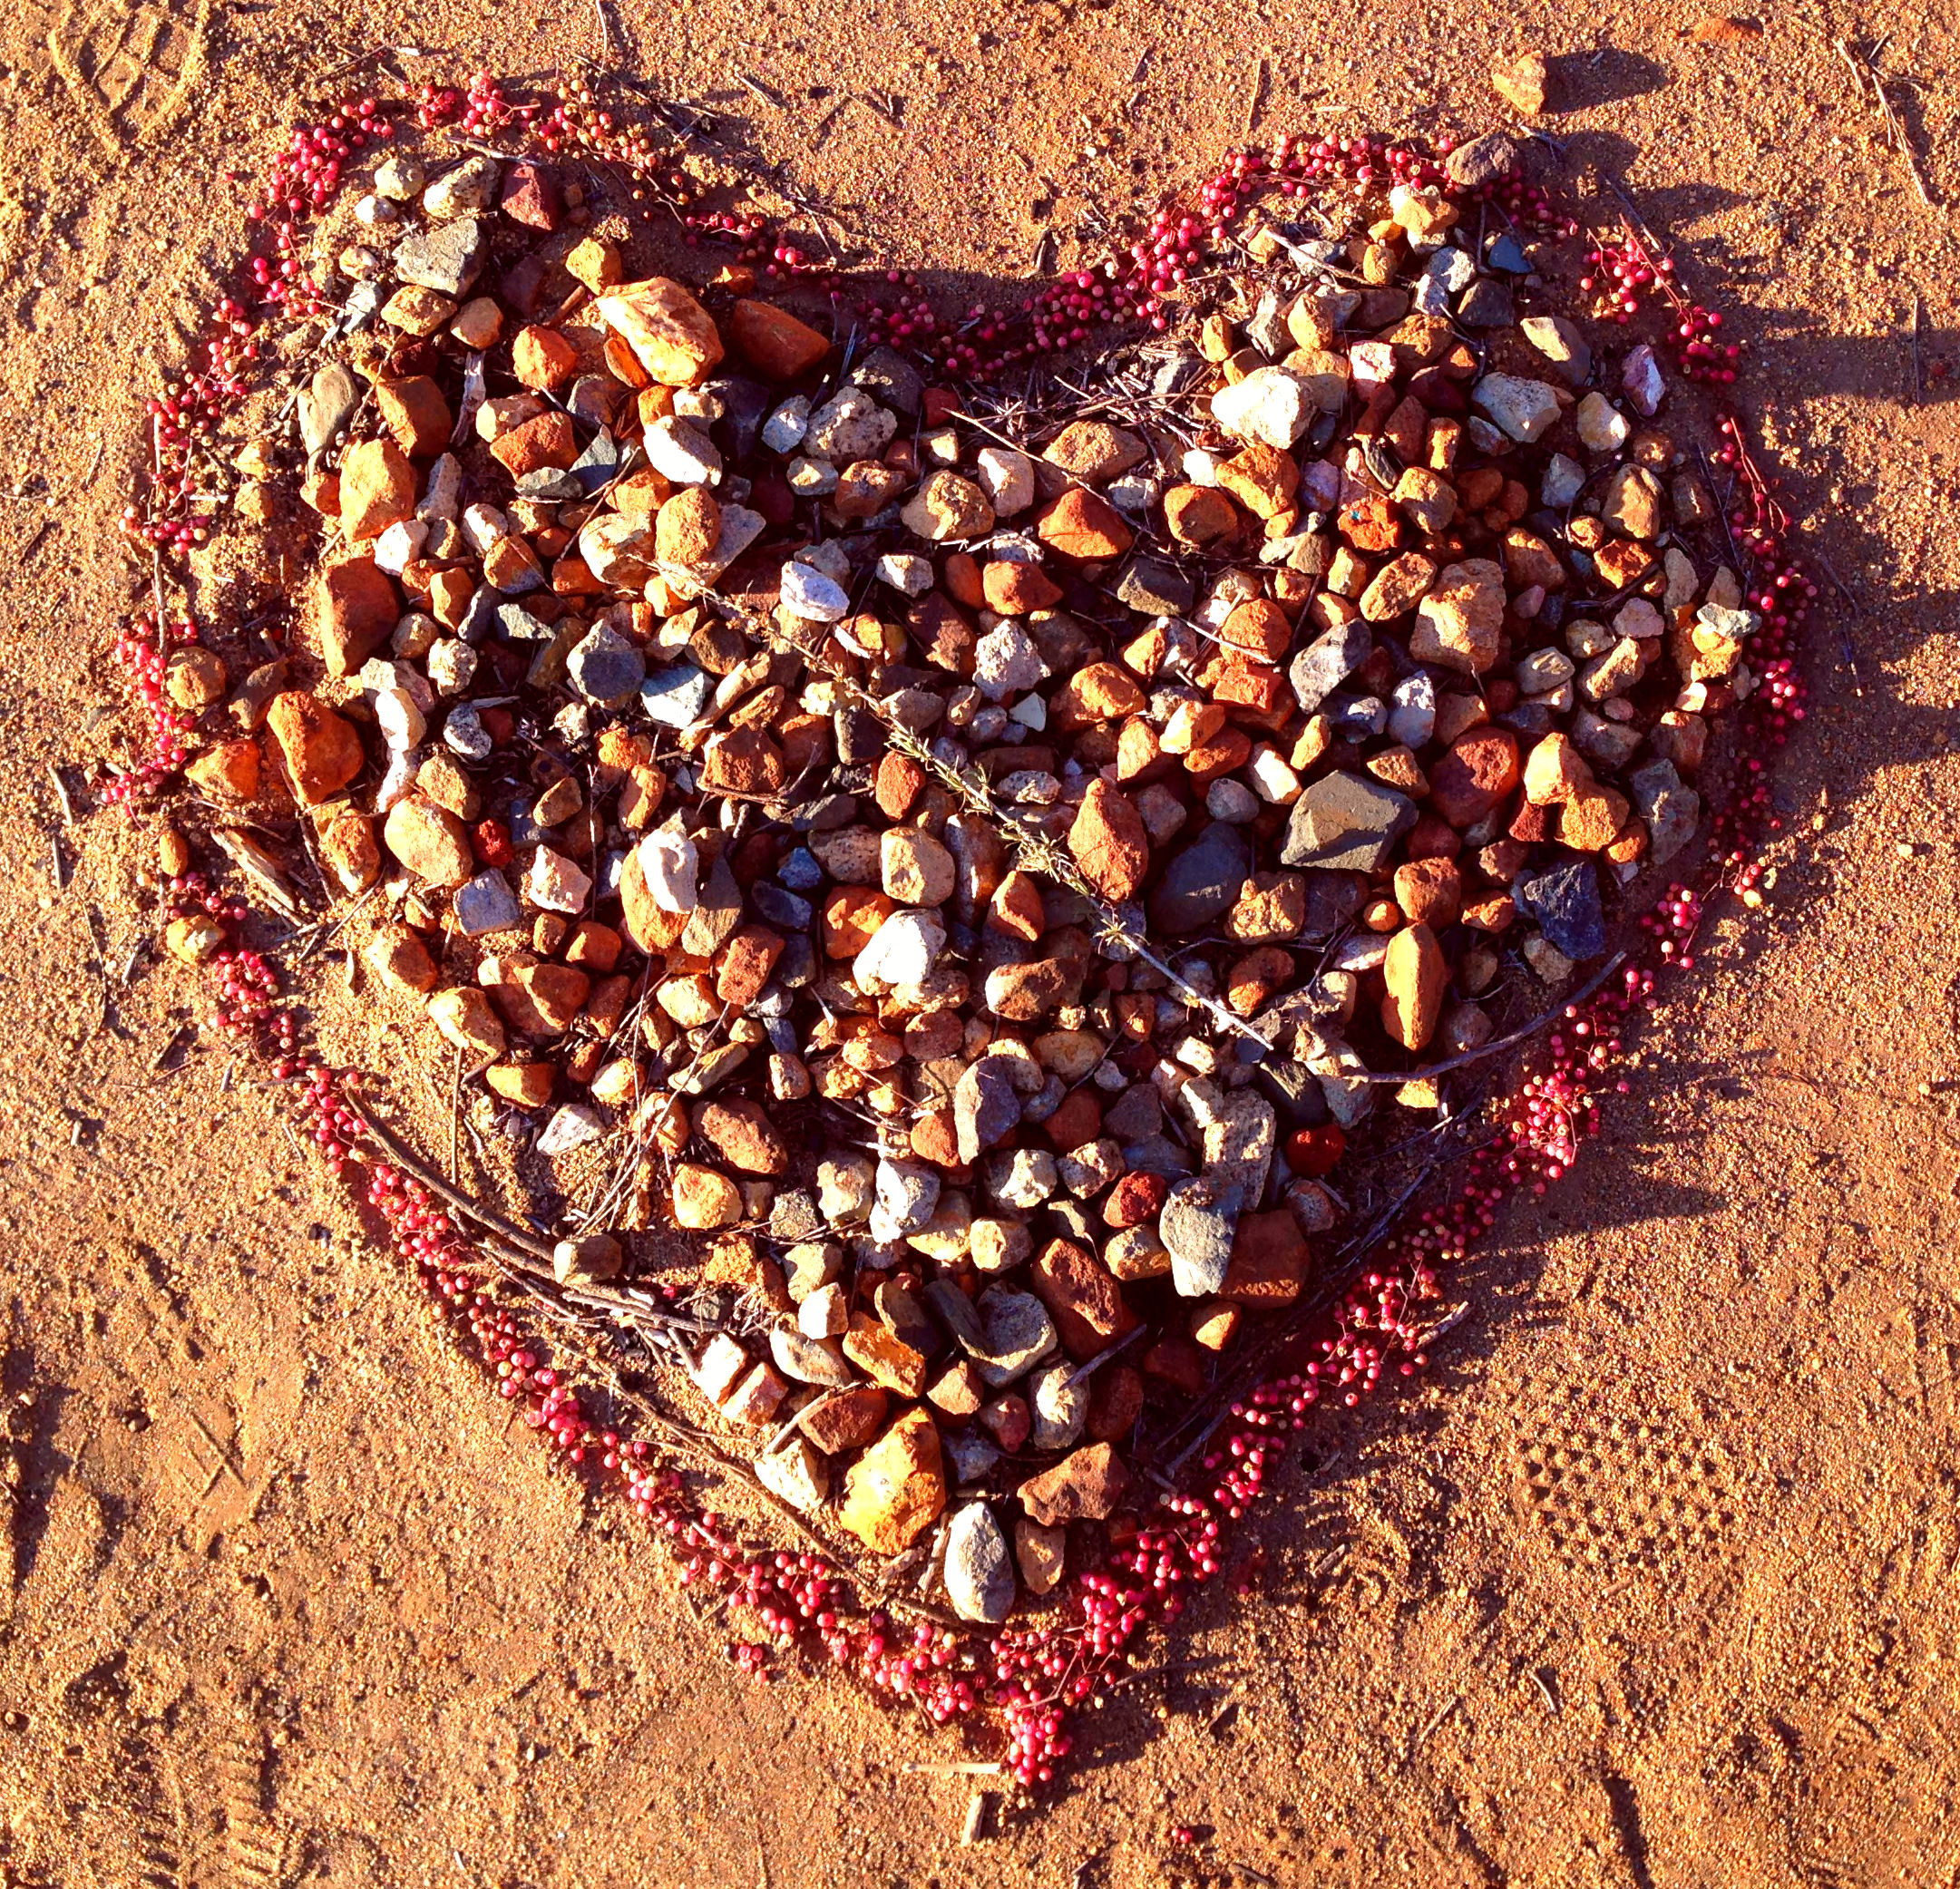 Heart made of stones © Kristy Arbon